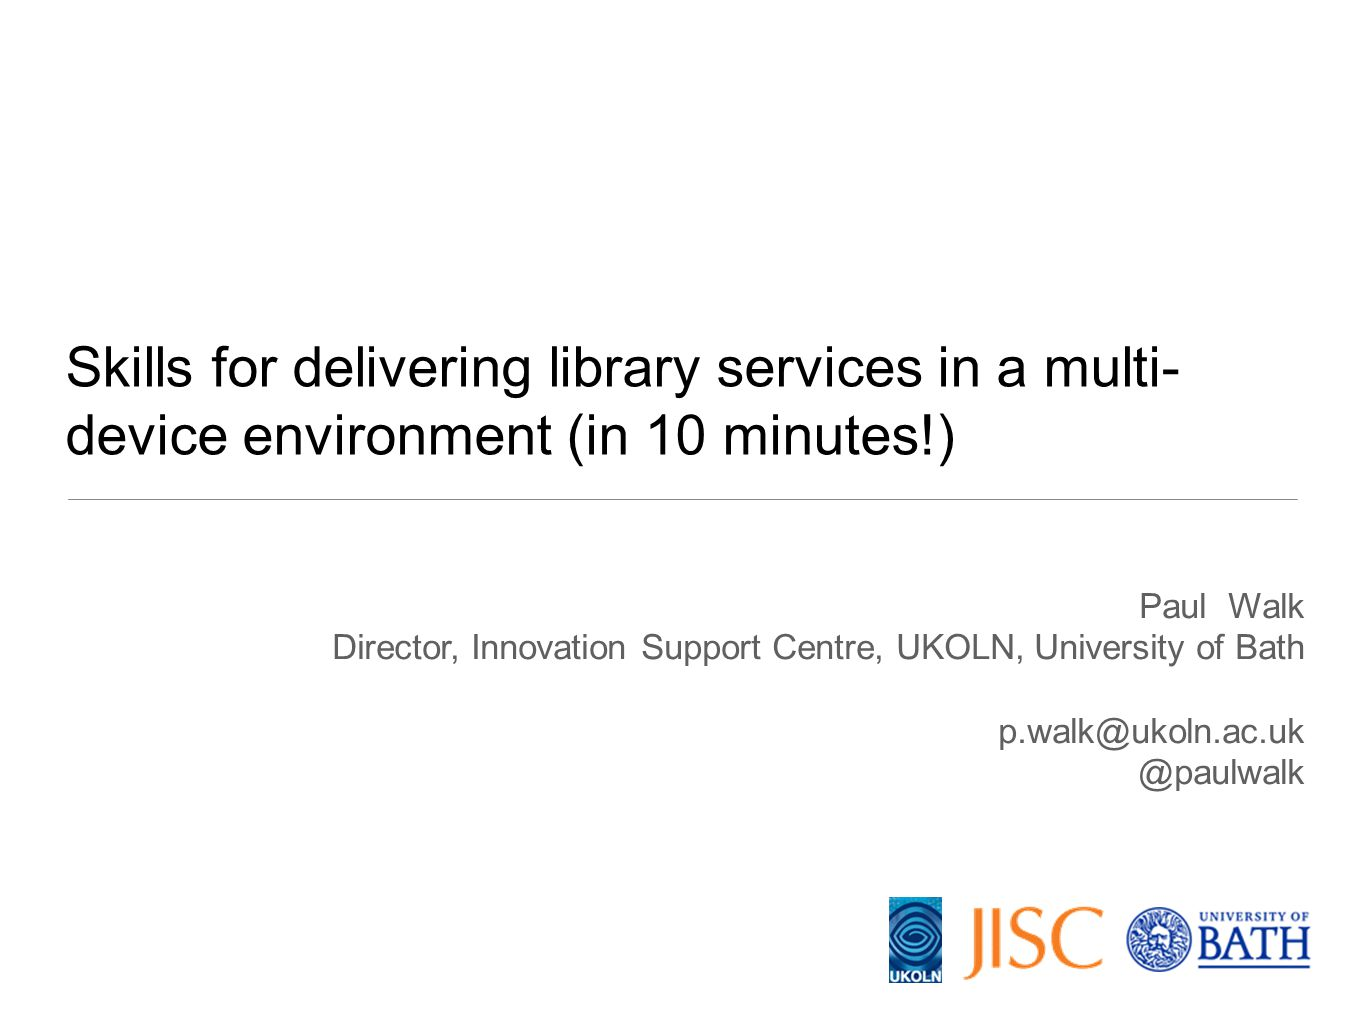 Paul Walk Director, Innovation Support Centre, UKOLN, University of Bath p.walk@ukoln.ac.uk @paulwalk Skills for delivering library services in a mult